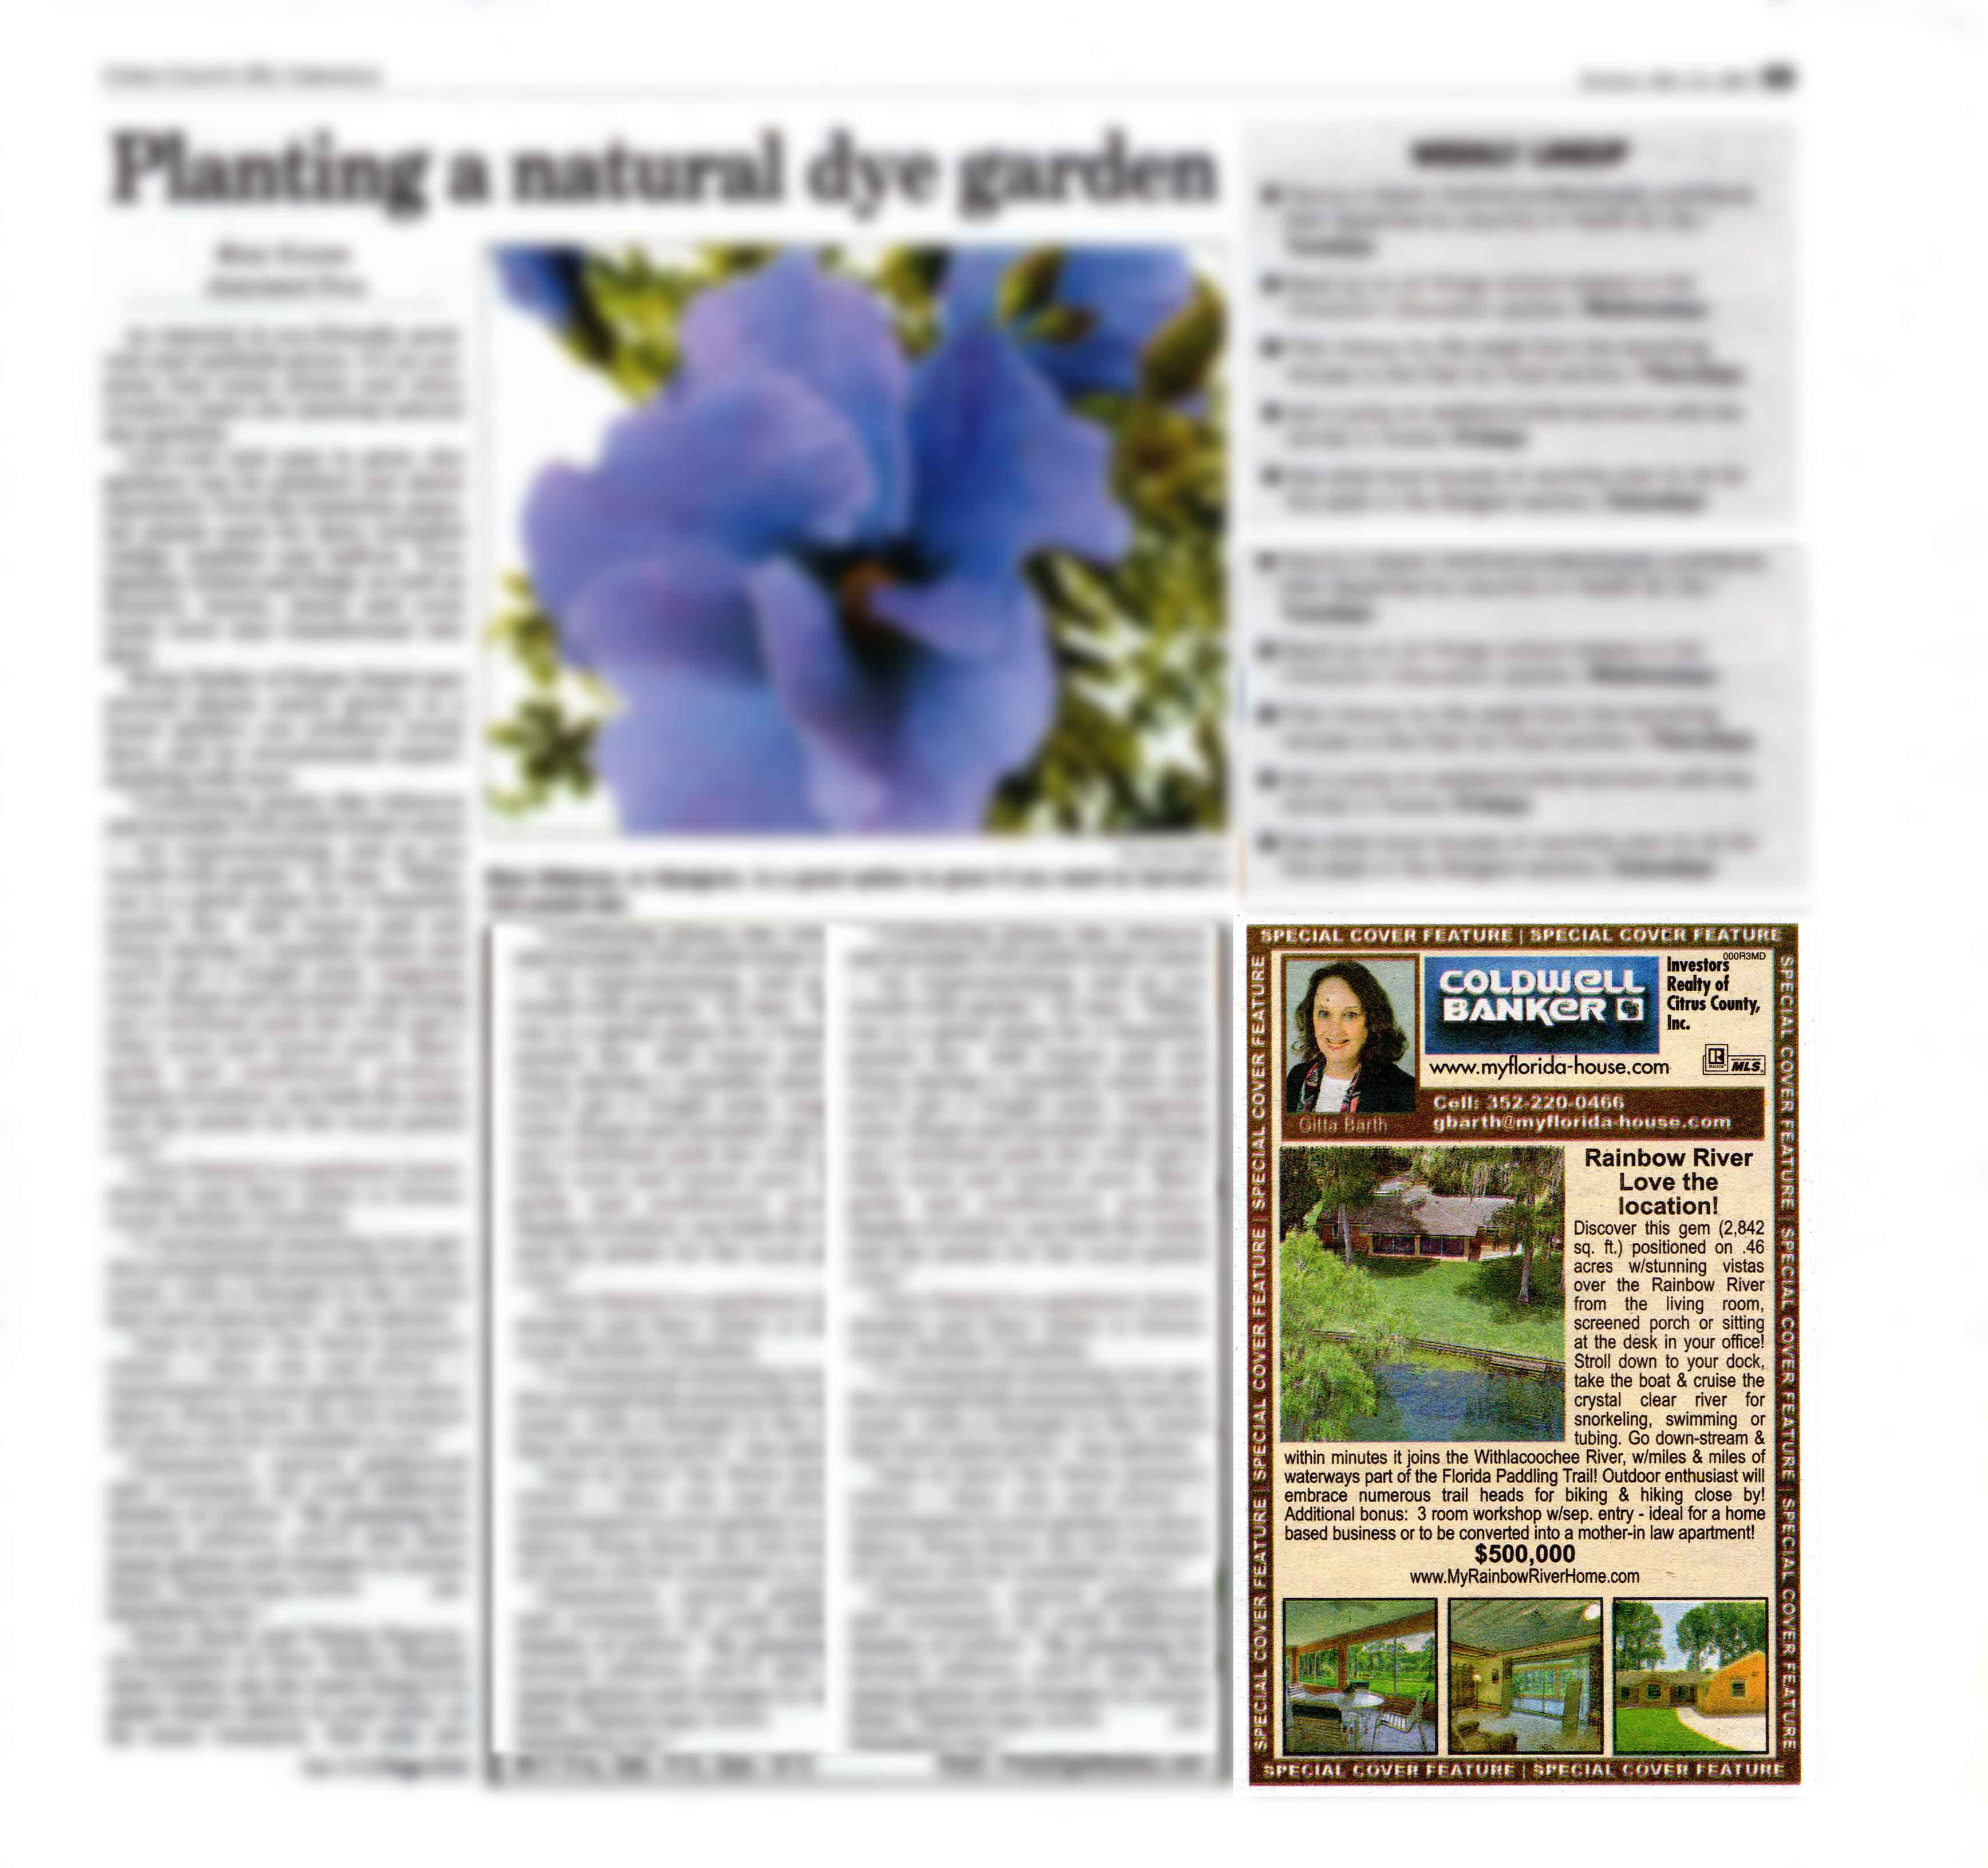 My Homefront Ads 21  May 2017 in the Citrus County Chronicle